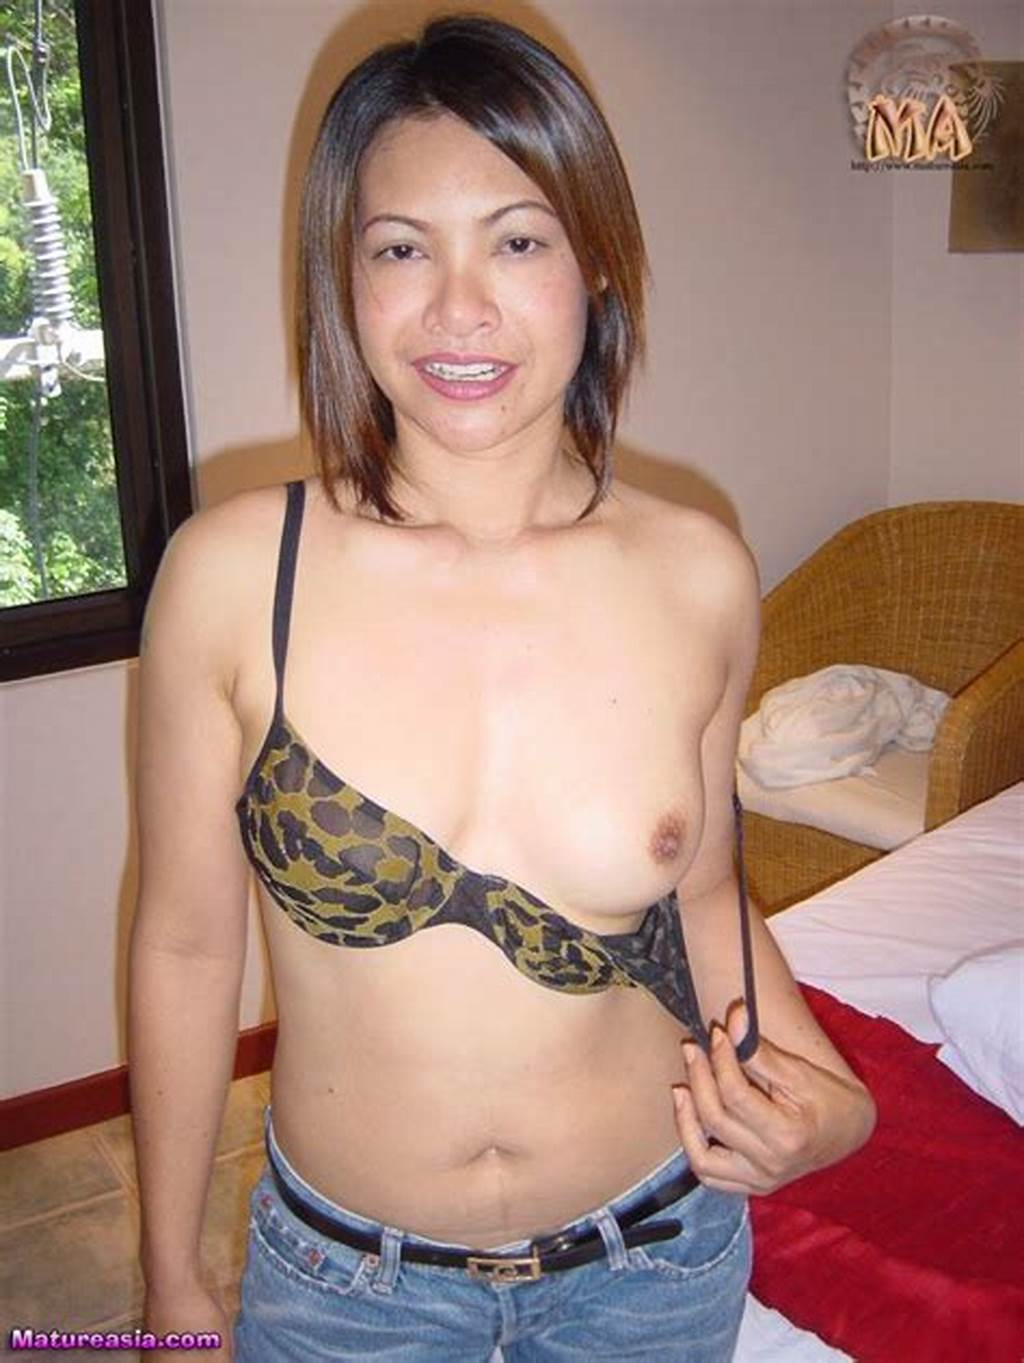 #Amateur #Asian #Milf #Looks #Great #For #Her #Age #With #A #Tiny